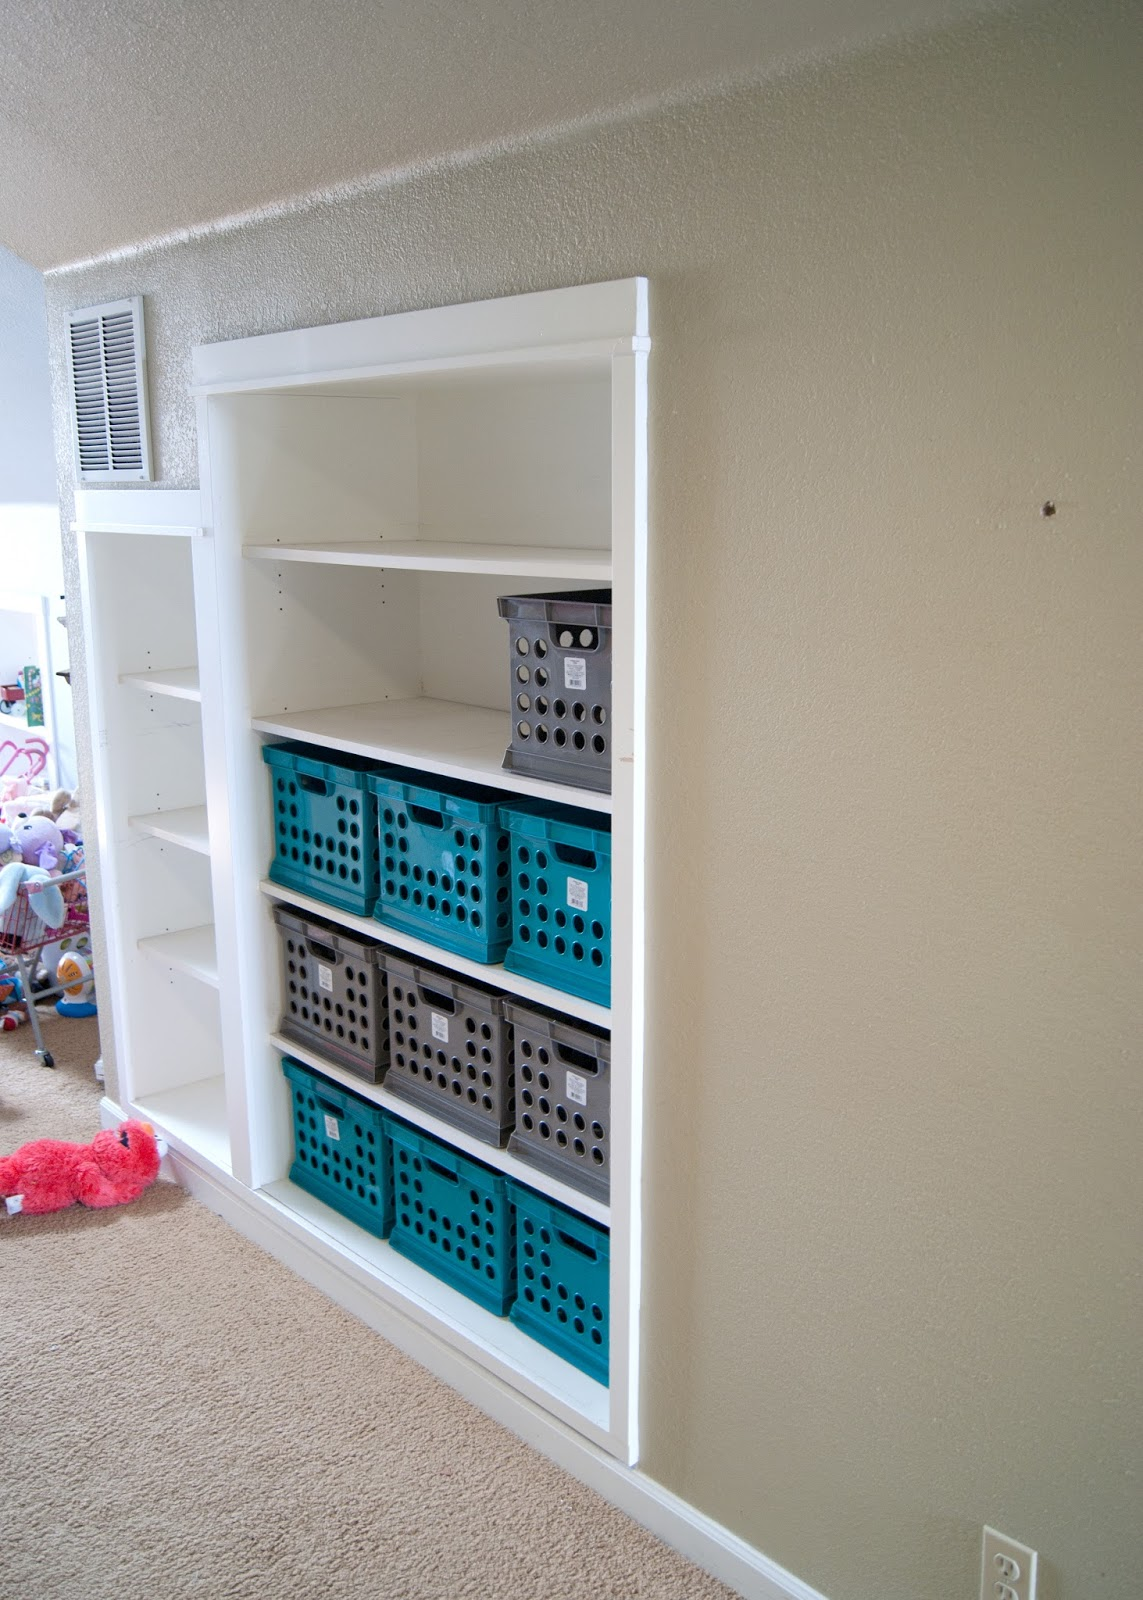 Built in shelves part way full of milk crates